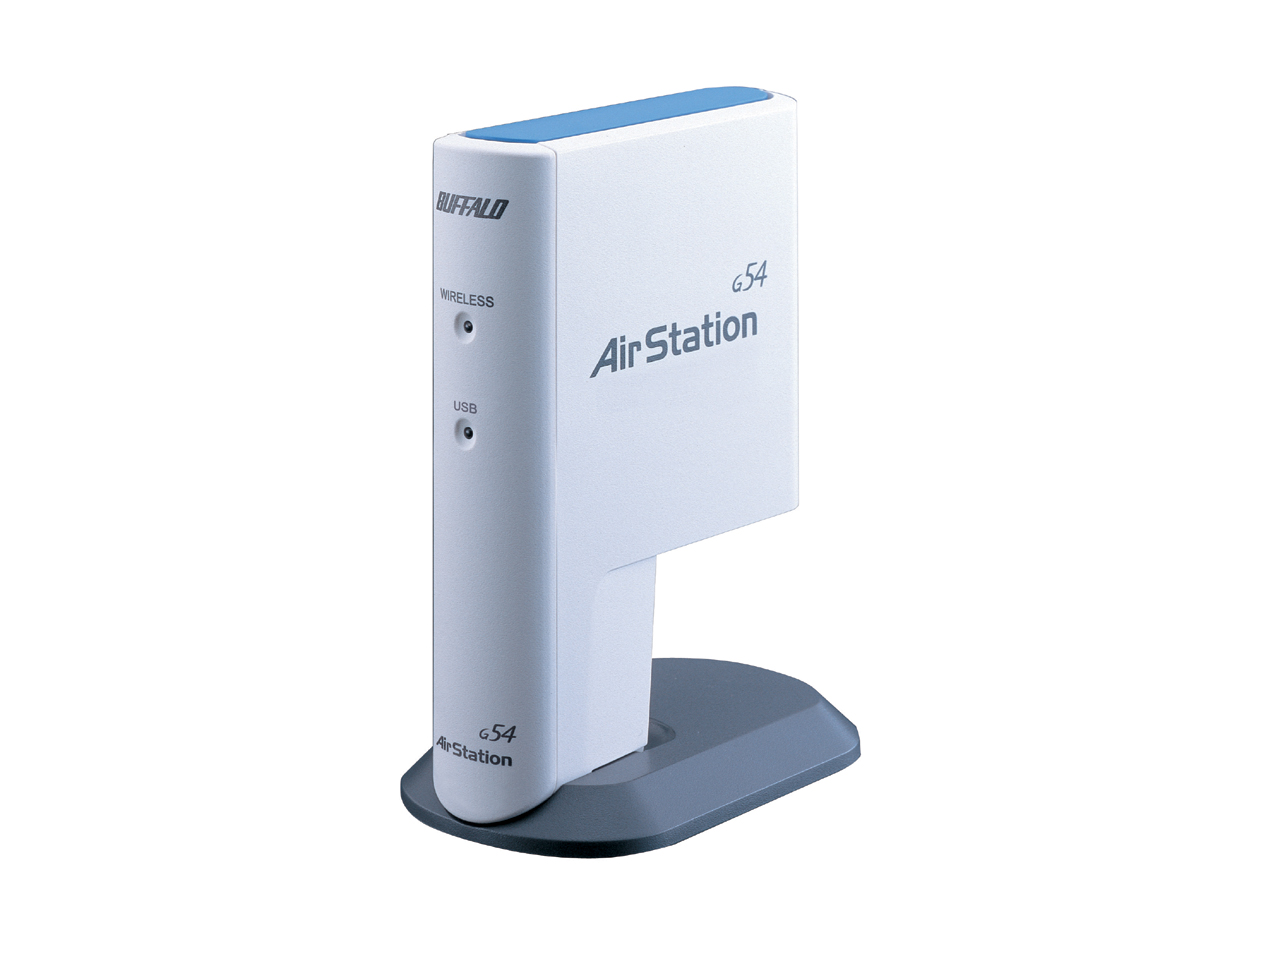 Wireless 54Mbps USB Adapter